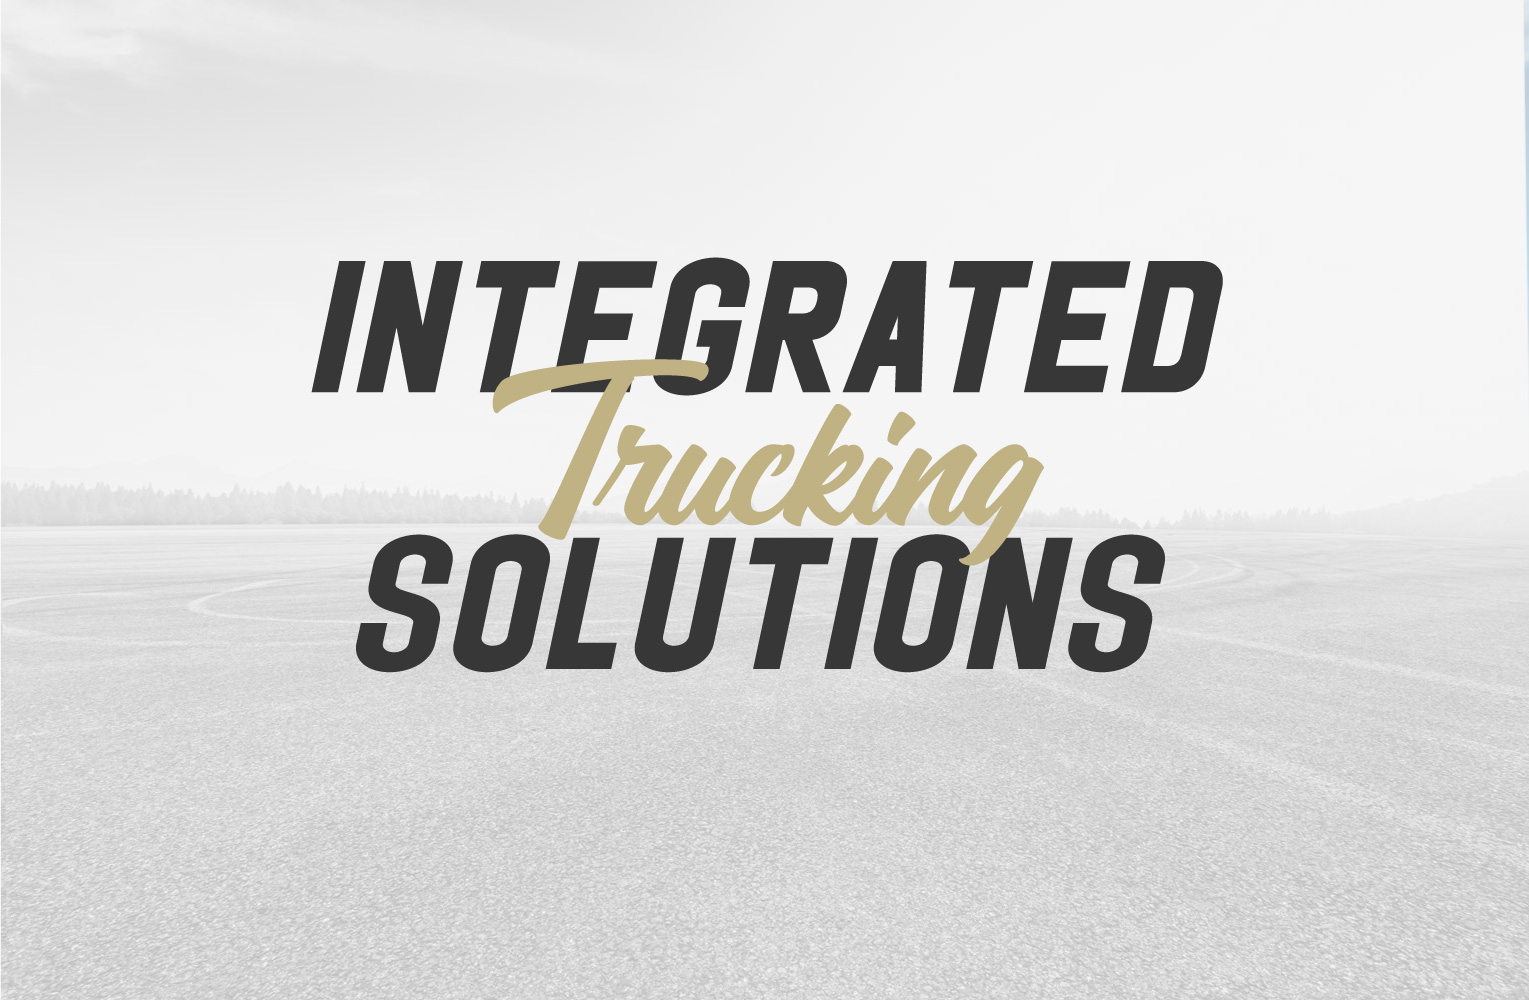 Integrated Trucking